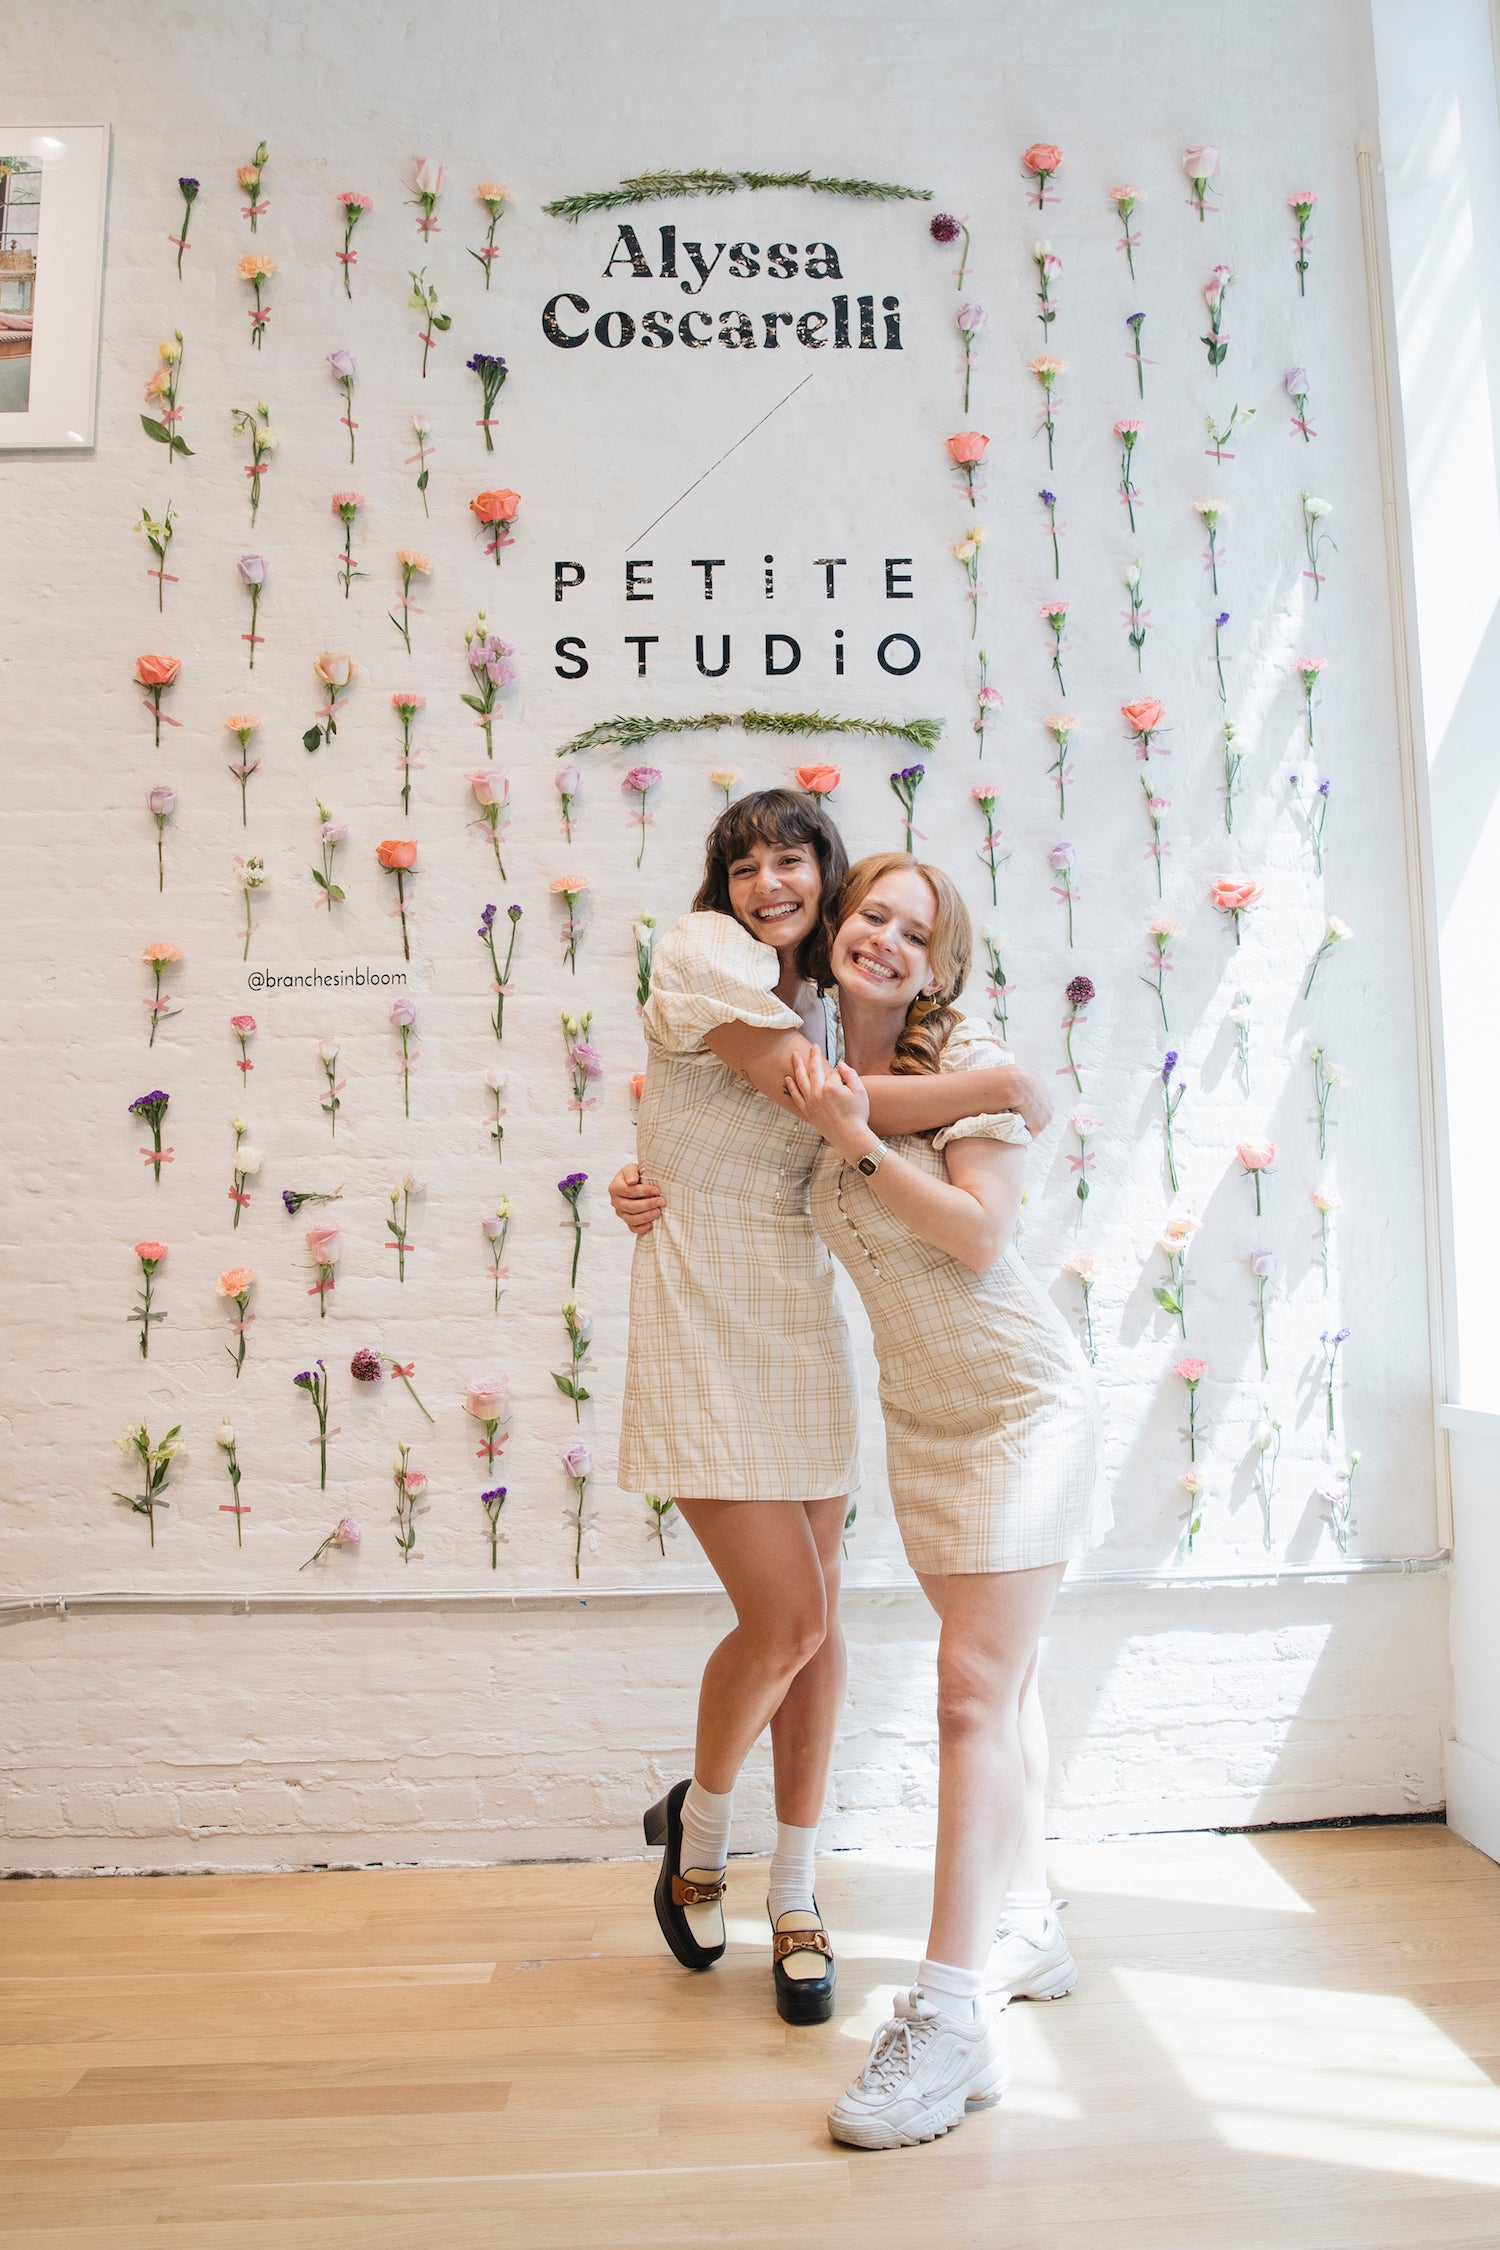 Alyssa Coscarelli x Petite Studio NYC Launch Party